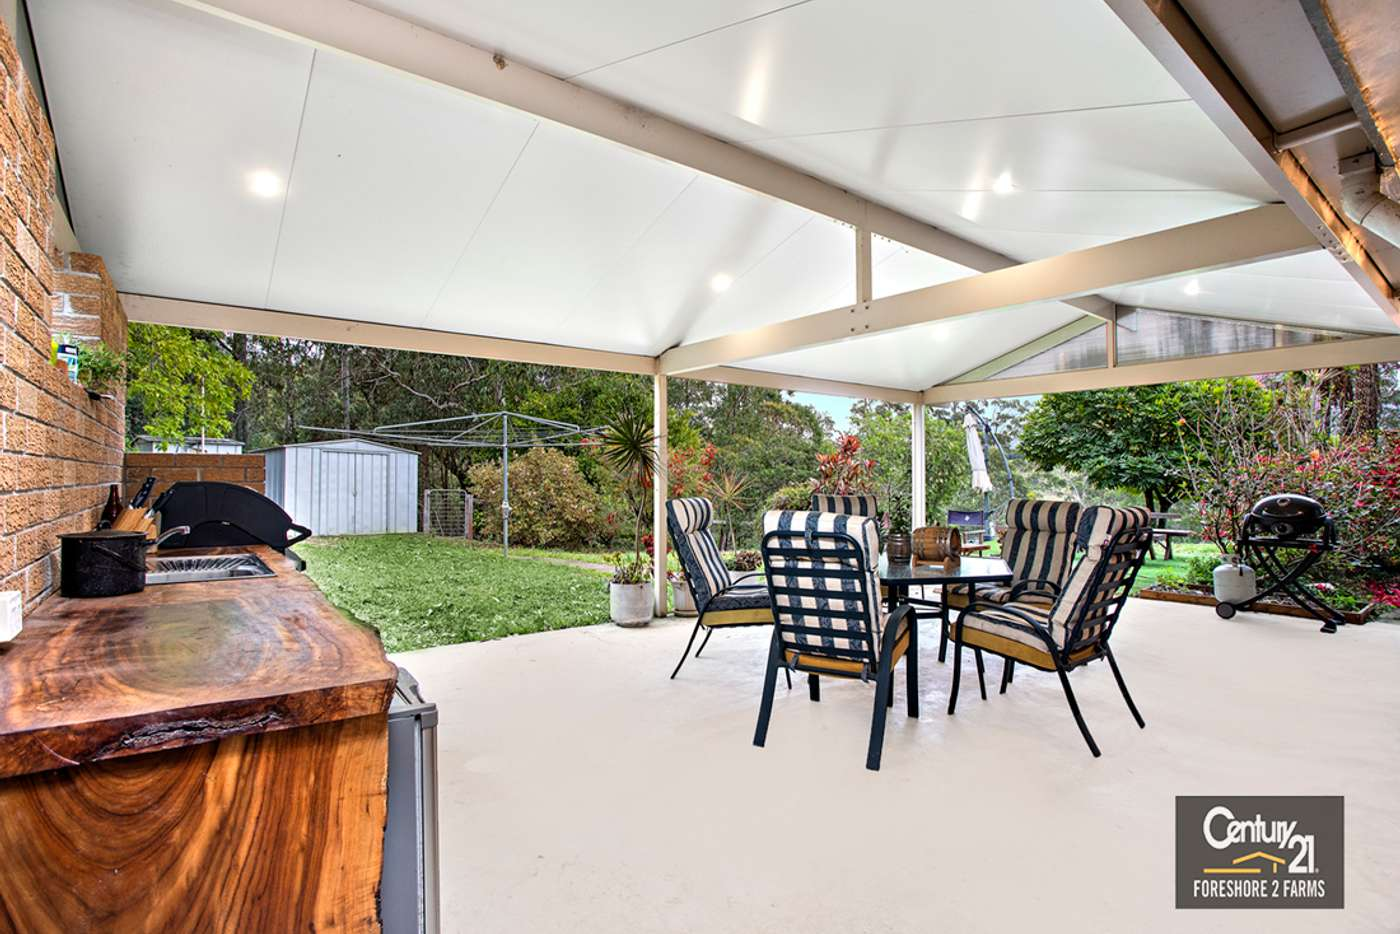 Sixth view of Homely house listing, 2455 Waterfall Way, Thora, Bellingen NSW 2454